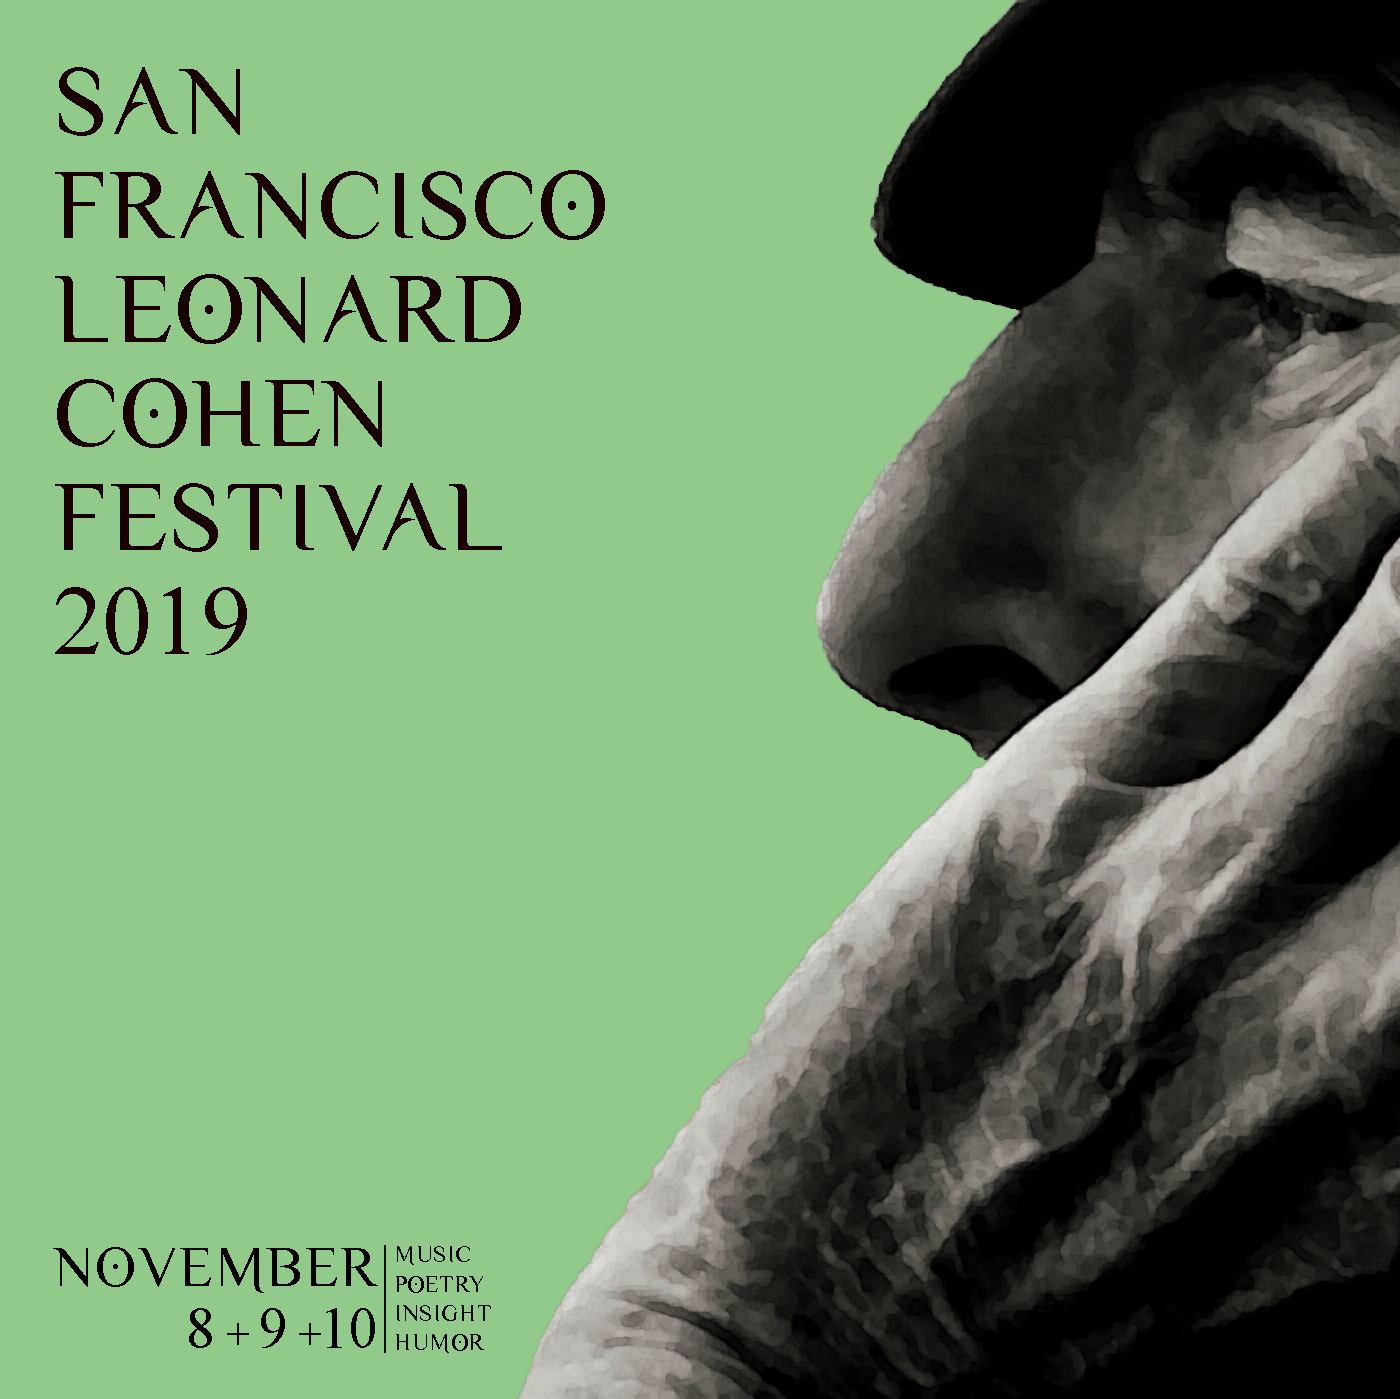 flier for the San Francisco Leonard Cohen Festival 2019